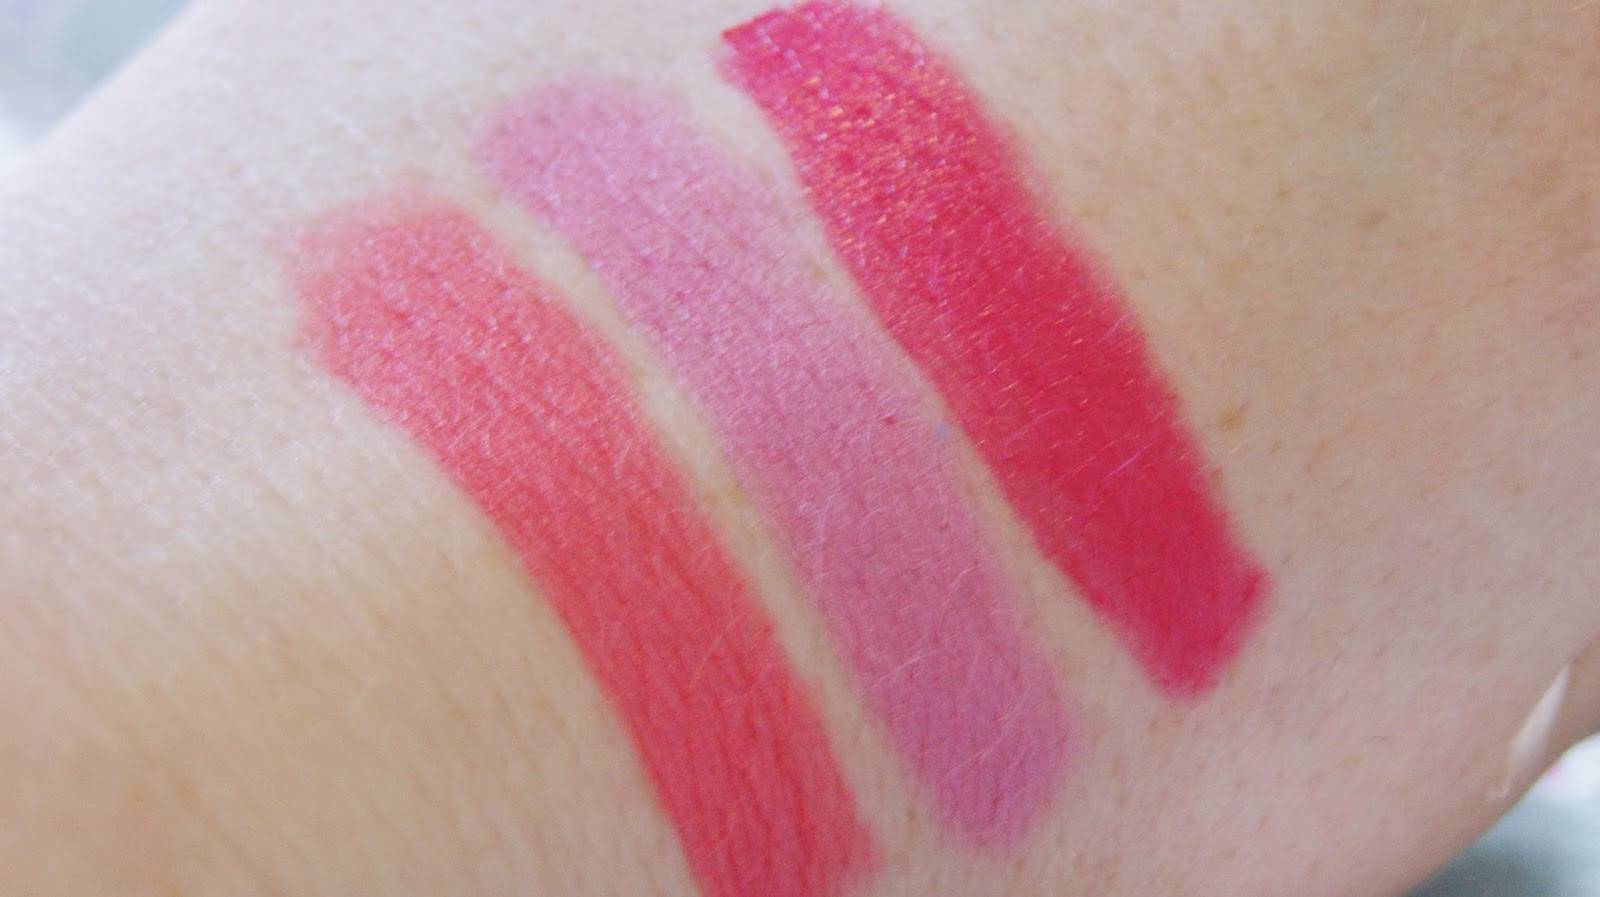 Collection Field Day Lipstick Swatches